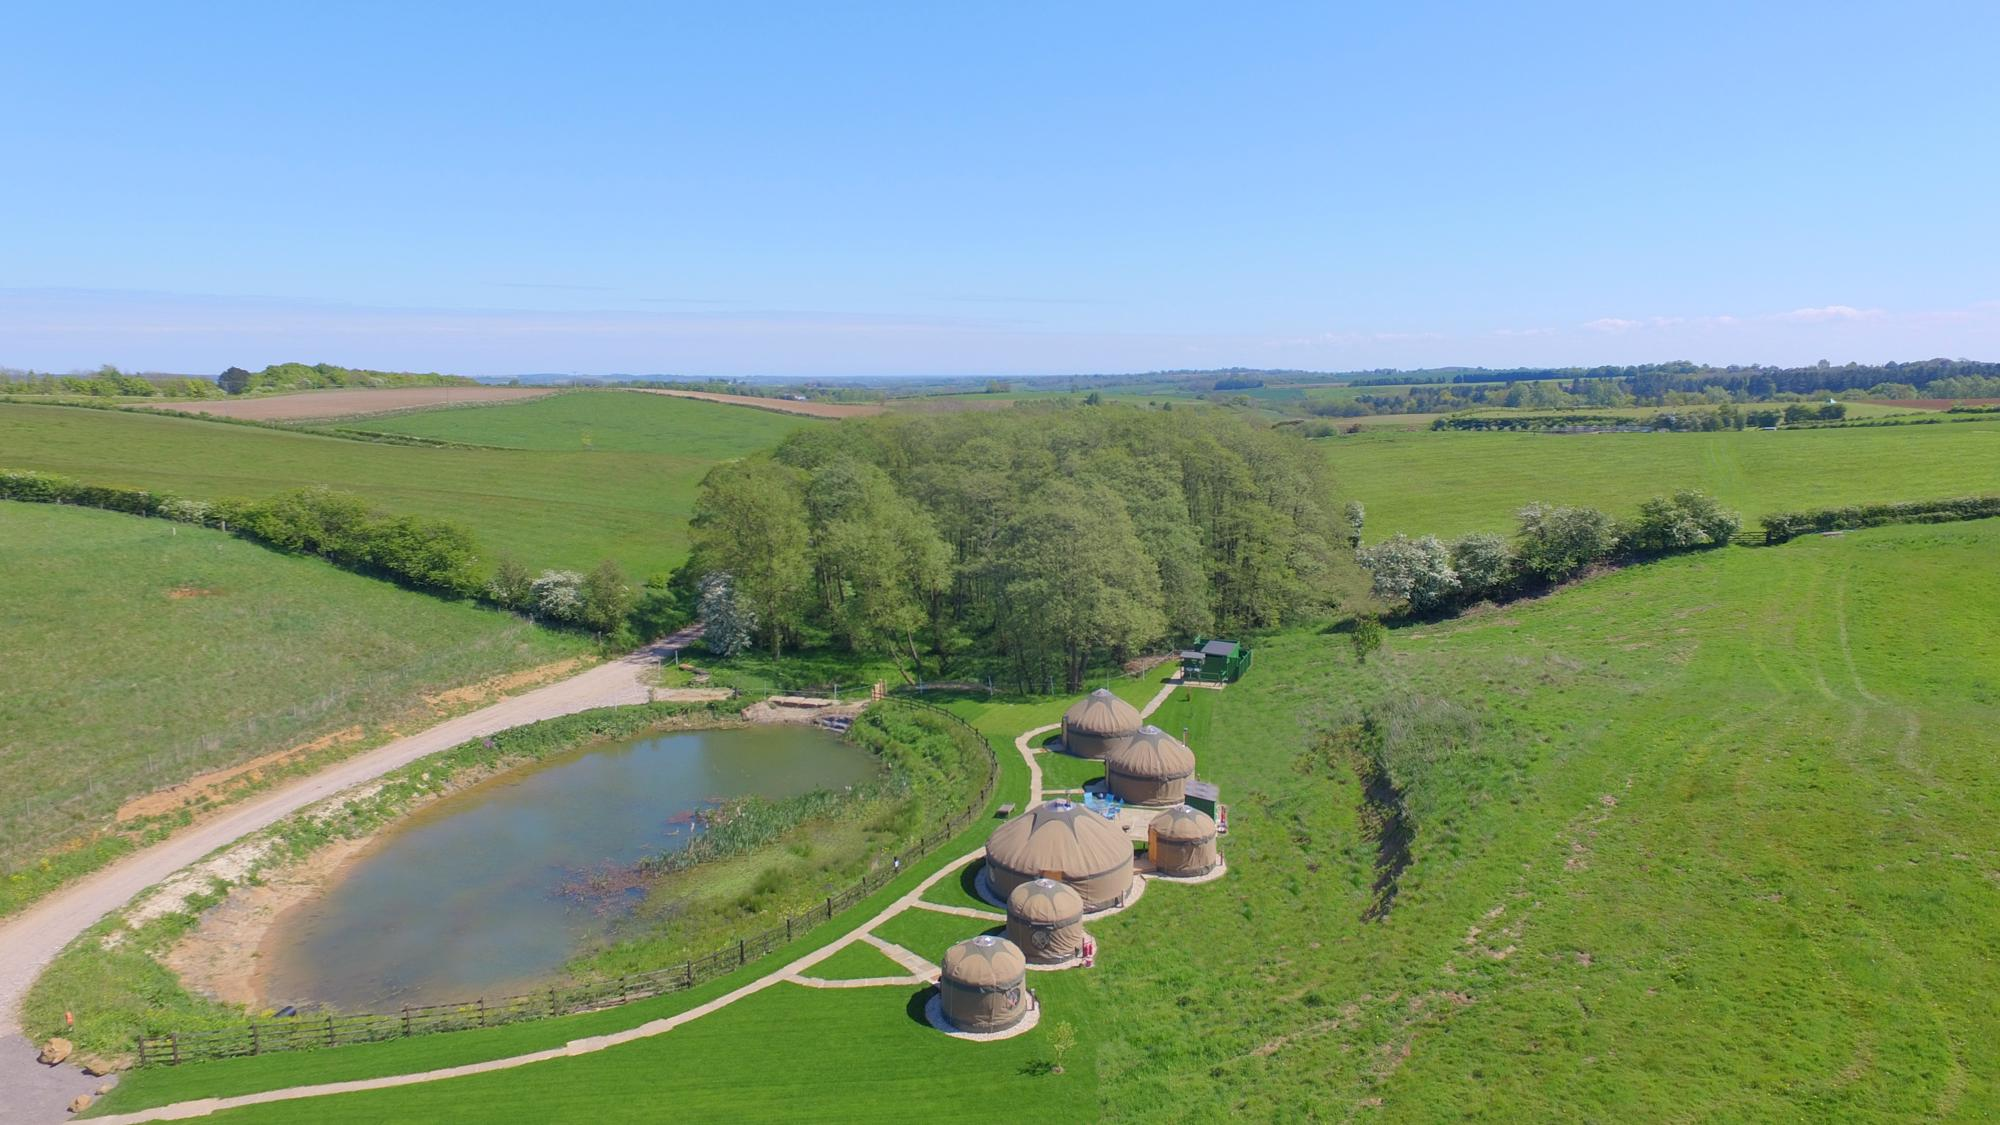 Glamping in the Lincolnshire Wolds – Top-rated glamping locations